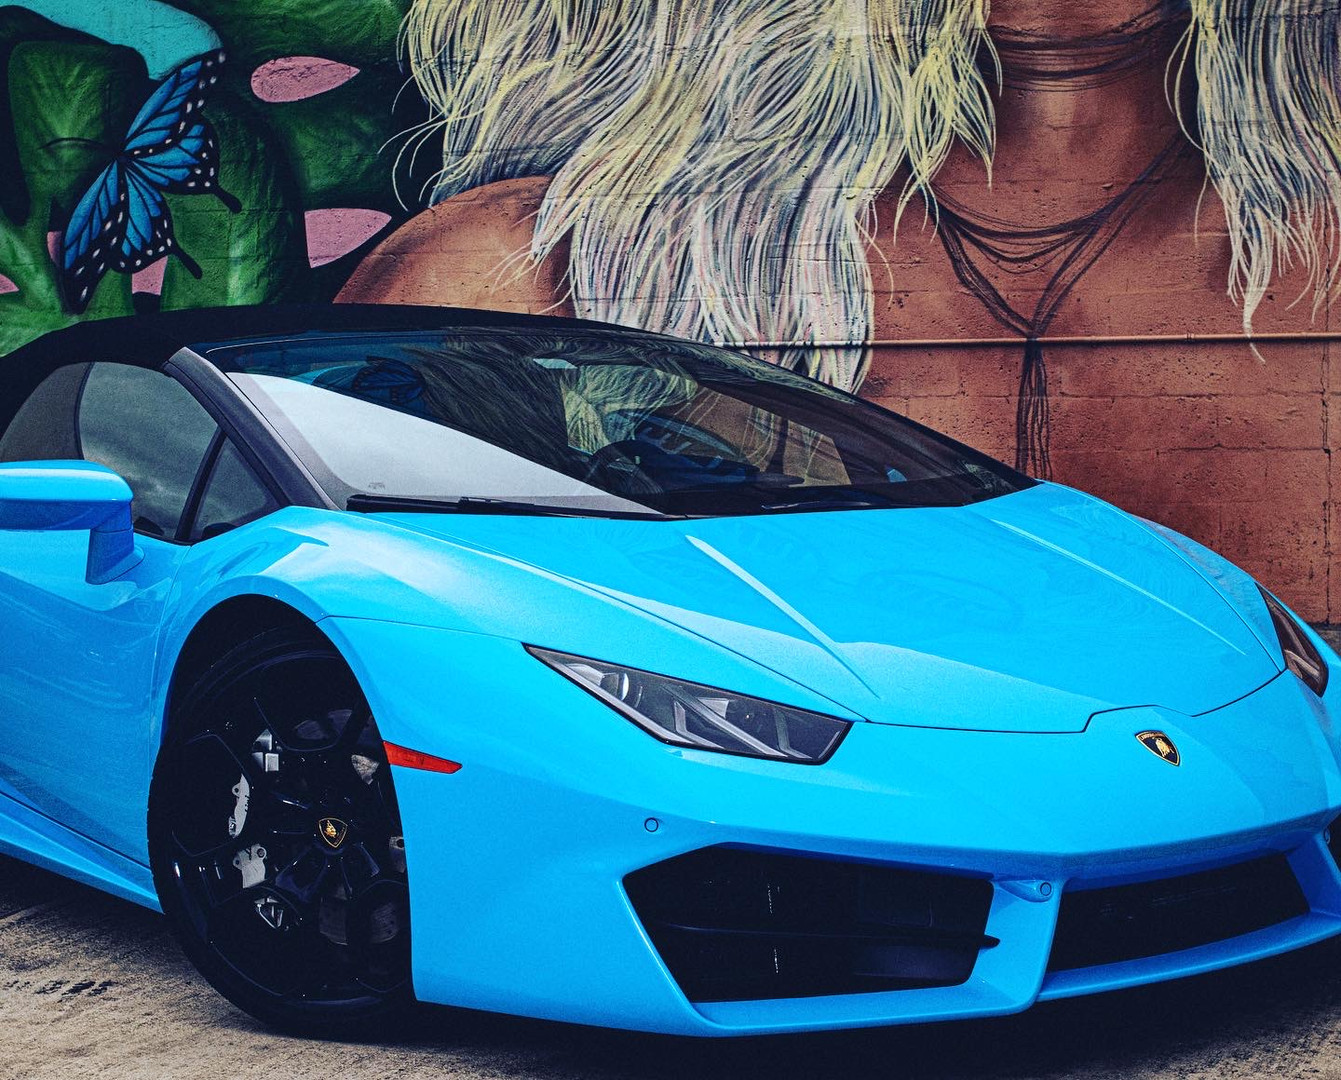 Huracan Spyder close up